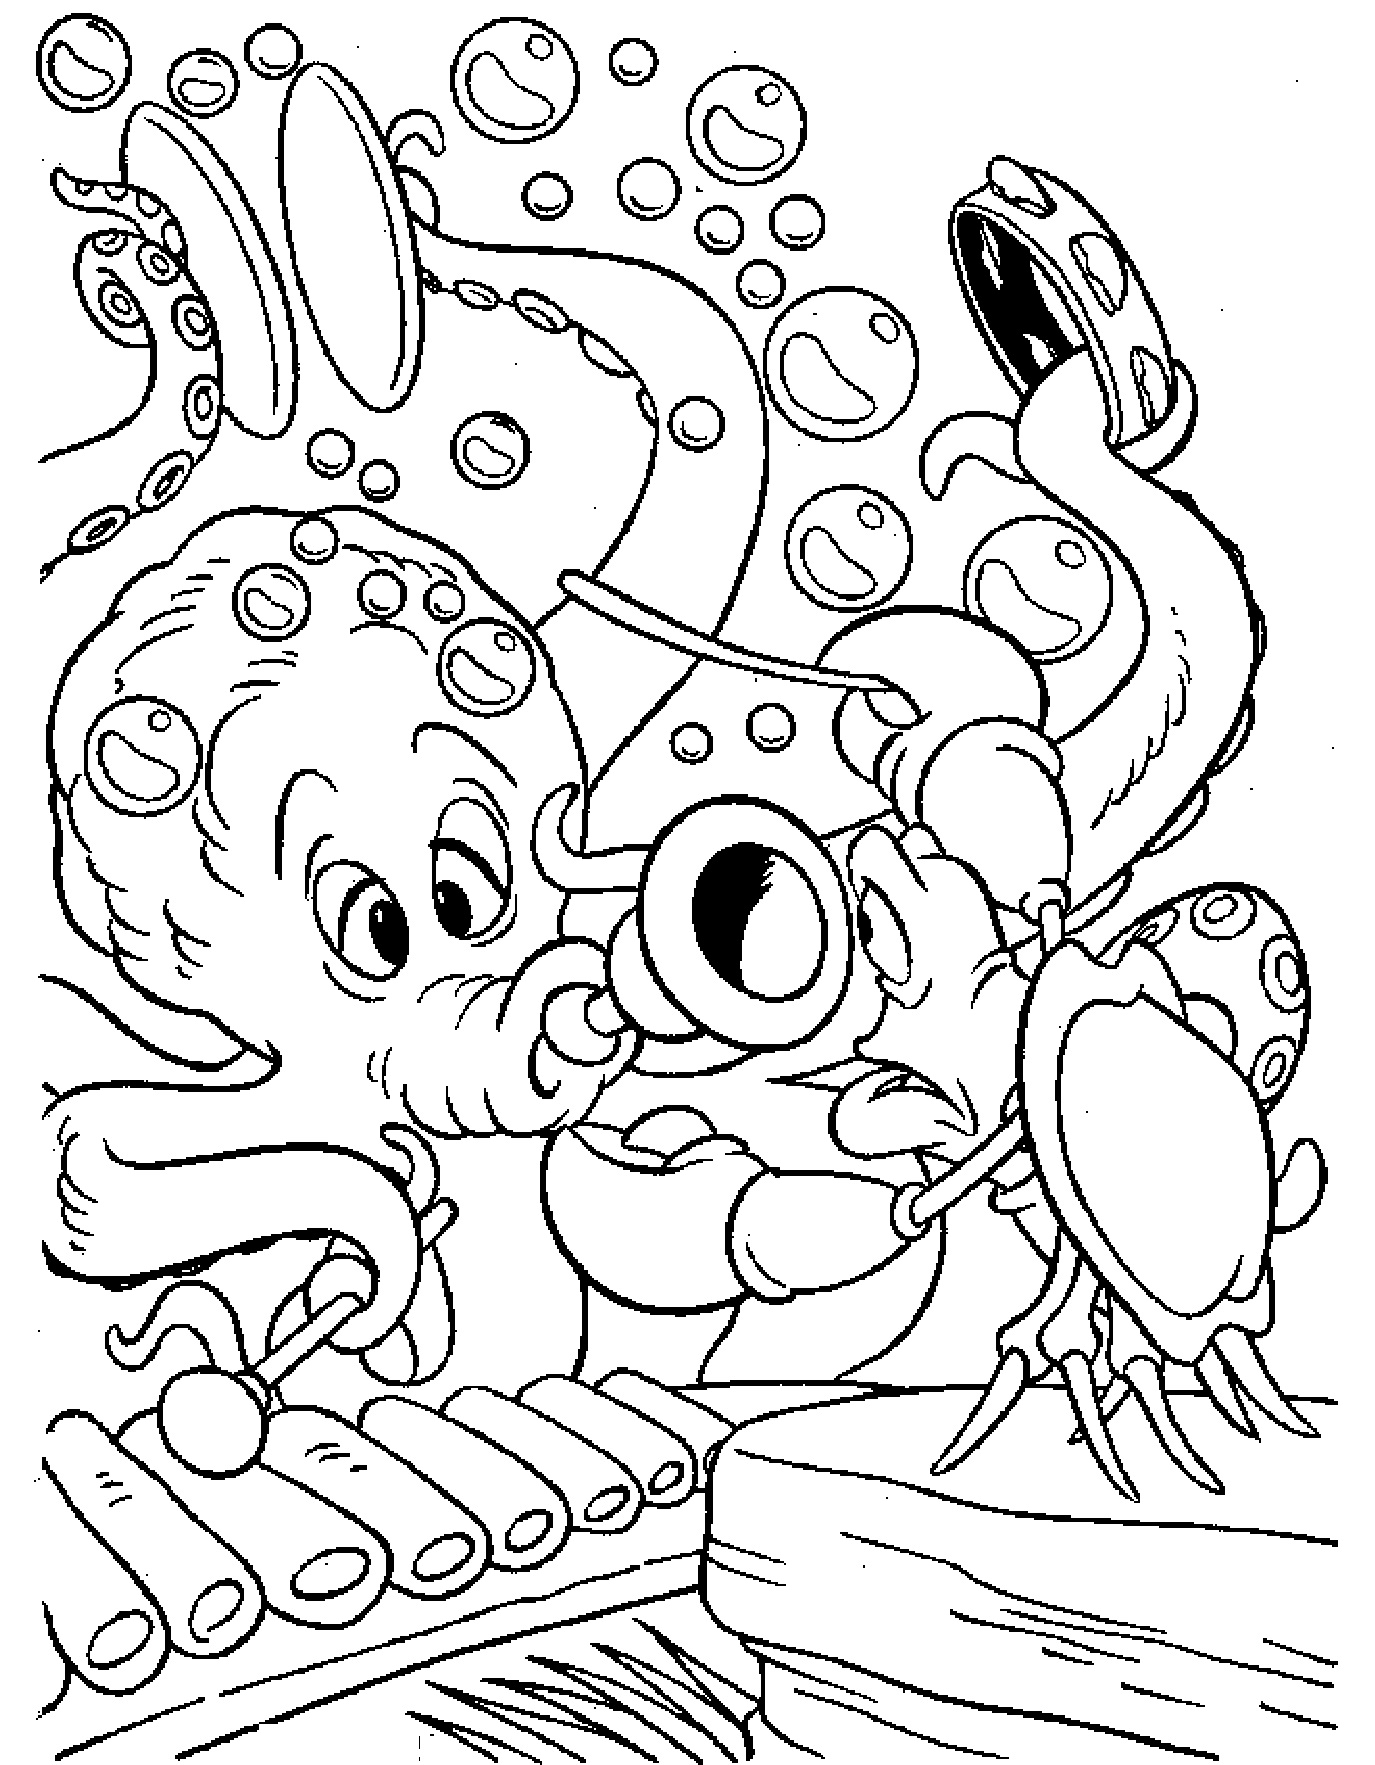 Free disney coloring pages little mermaid - Little Mermaid Characters Coloring Pages